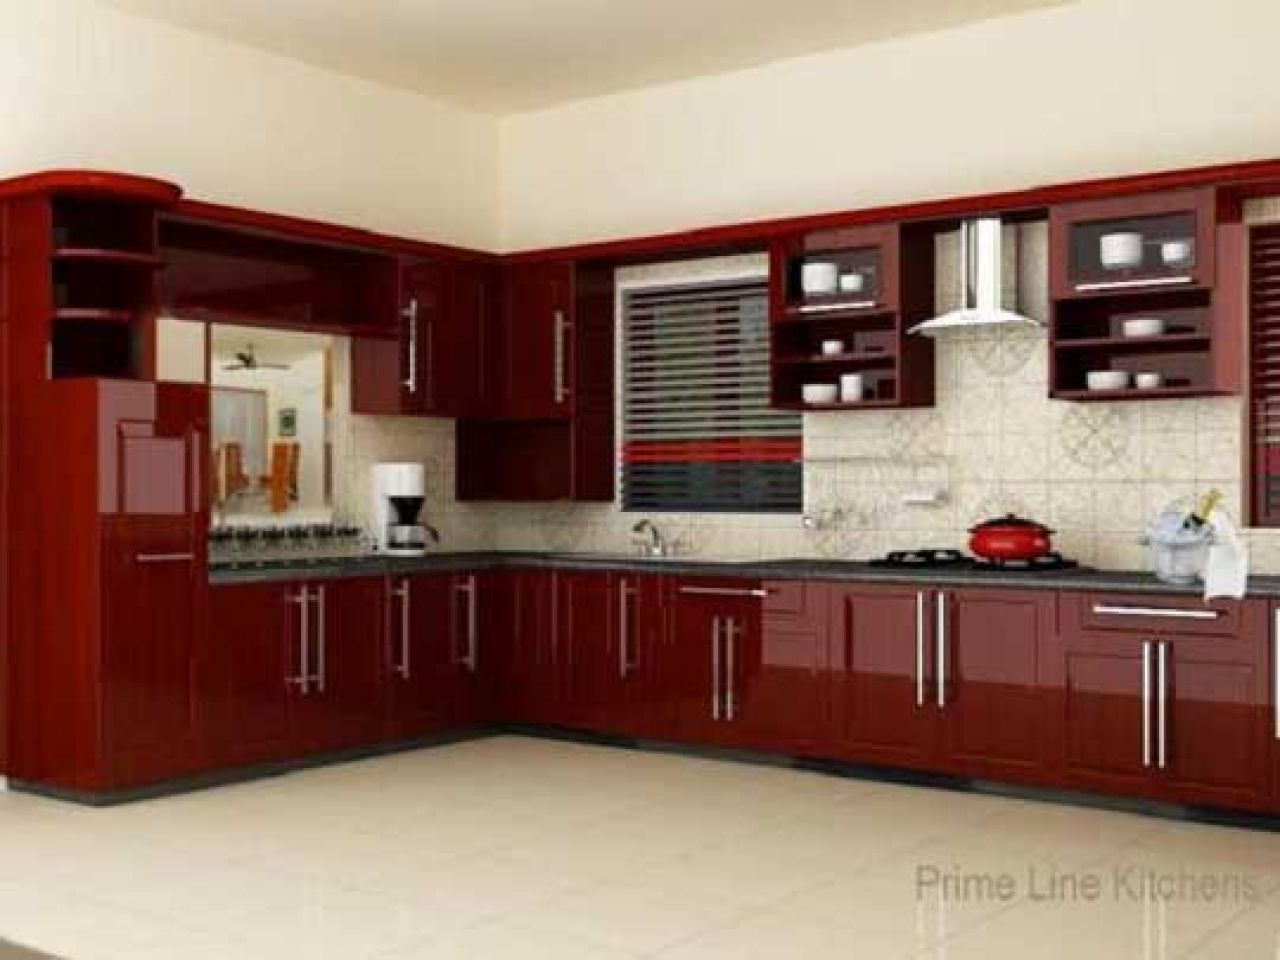 New Model Kitchen Design Kerala conexaowebmix.com ... on Model Kitchen Ideas  id=23759